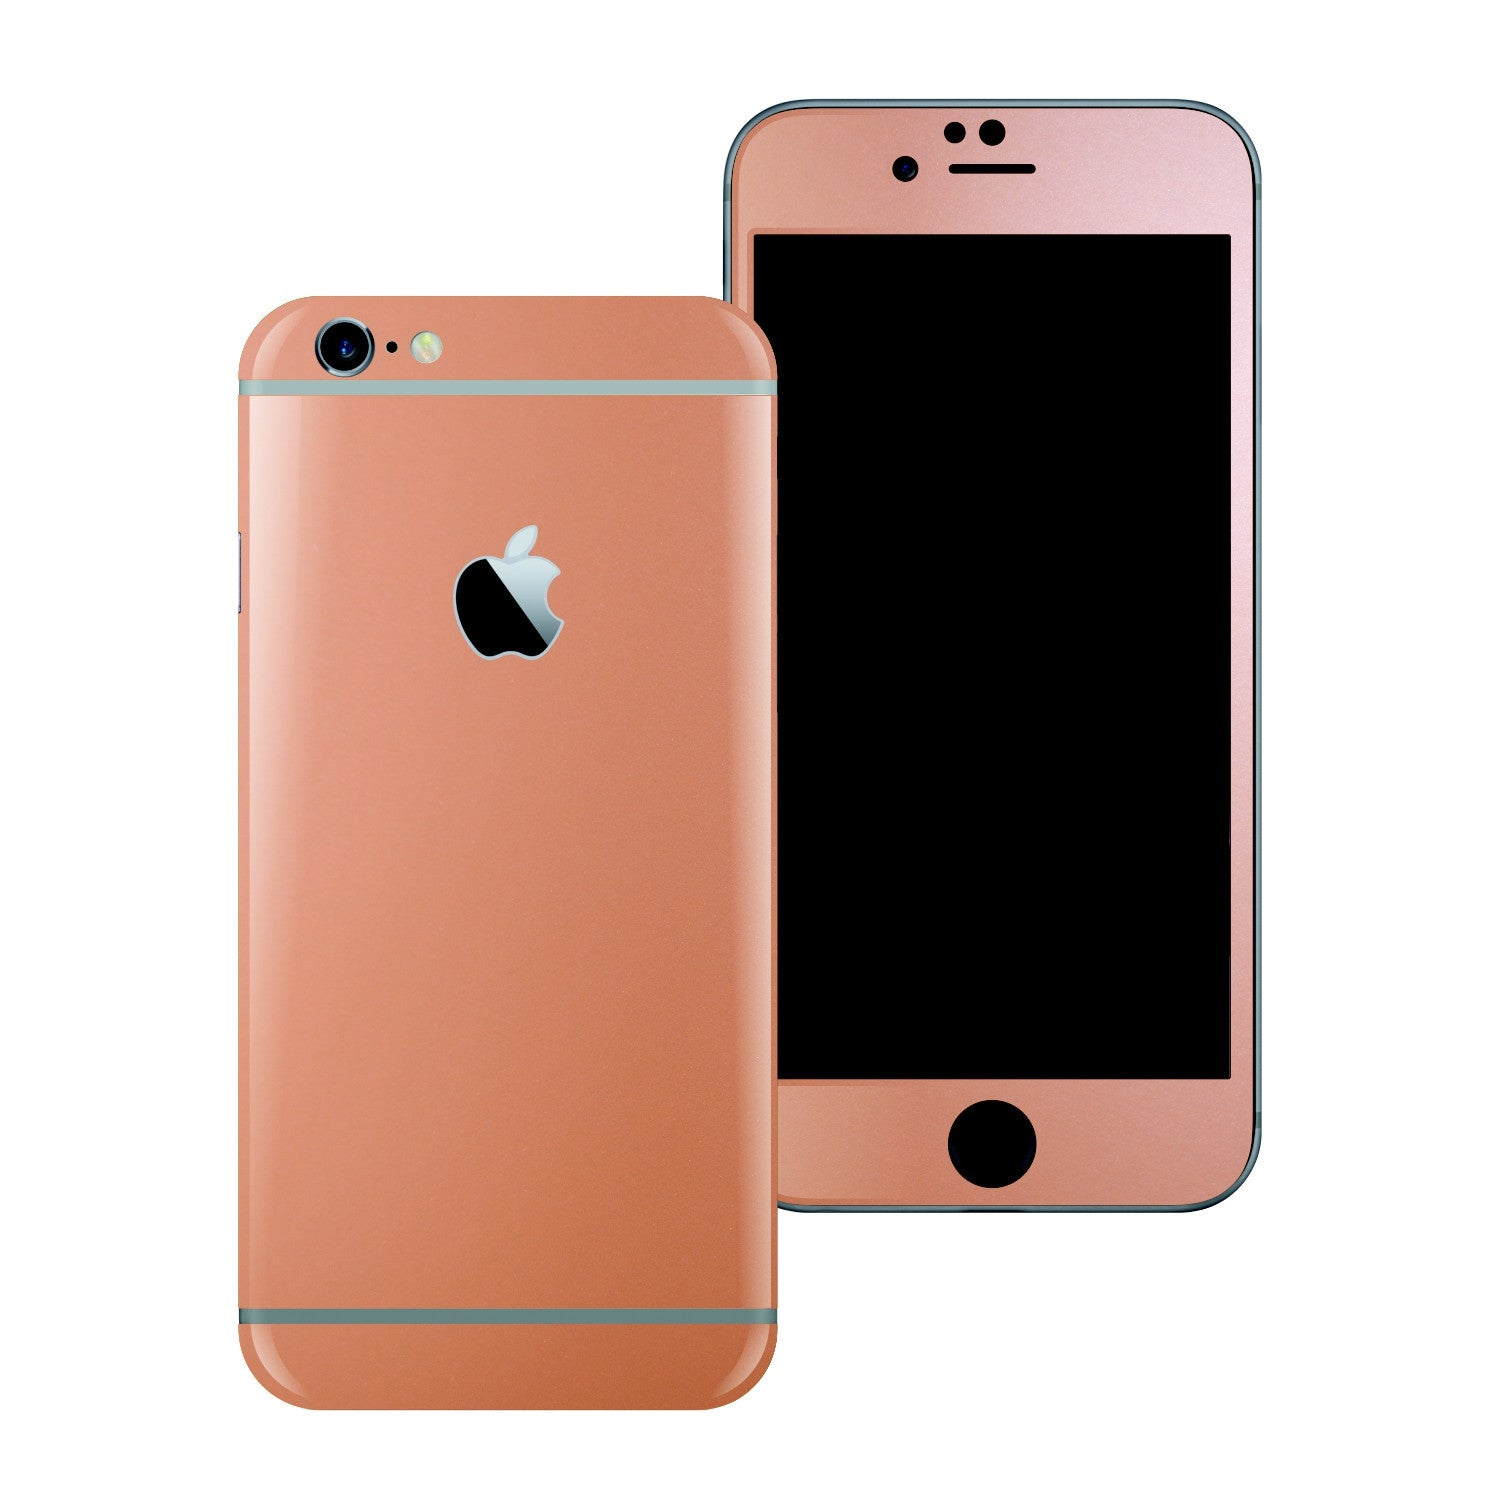 iphone 6s plus rose gold matt metallic skin wrap decal. Black Bedroom Furniture Sets. Home Design Ideas